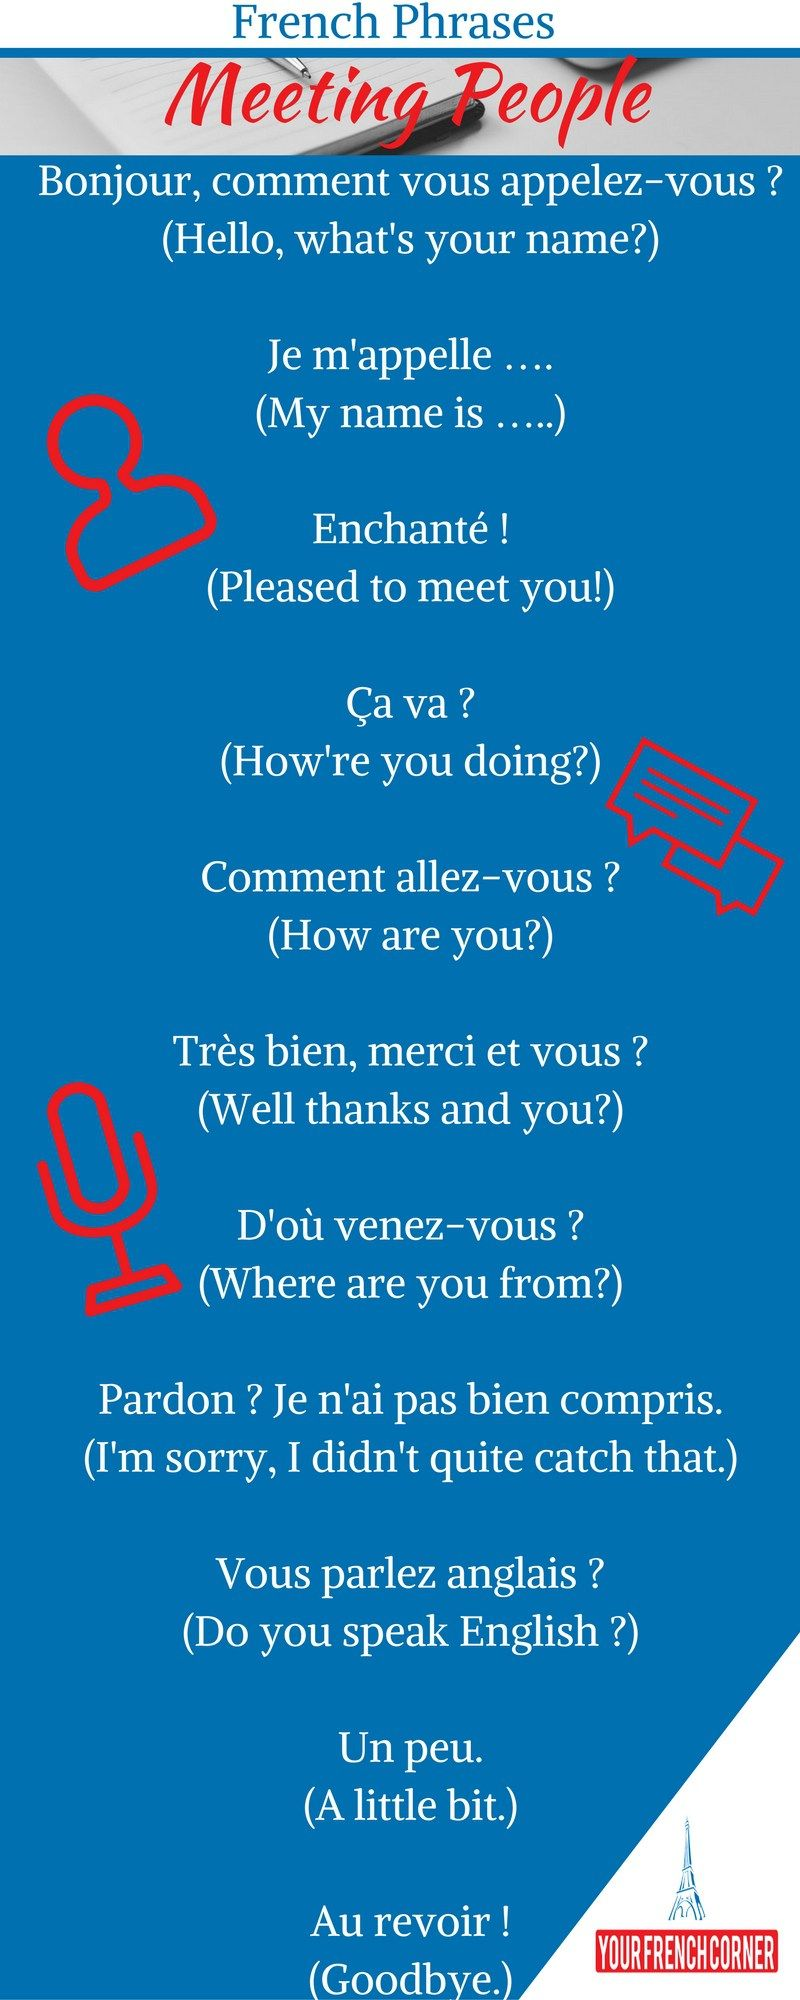 Do you speak english well in french